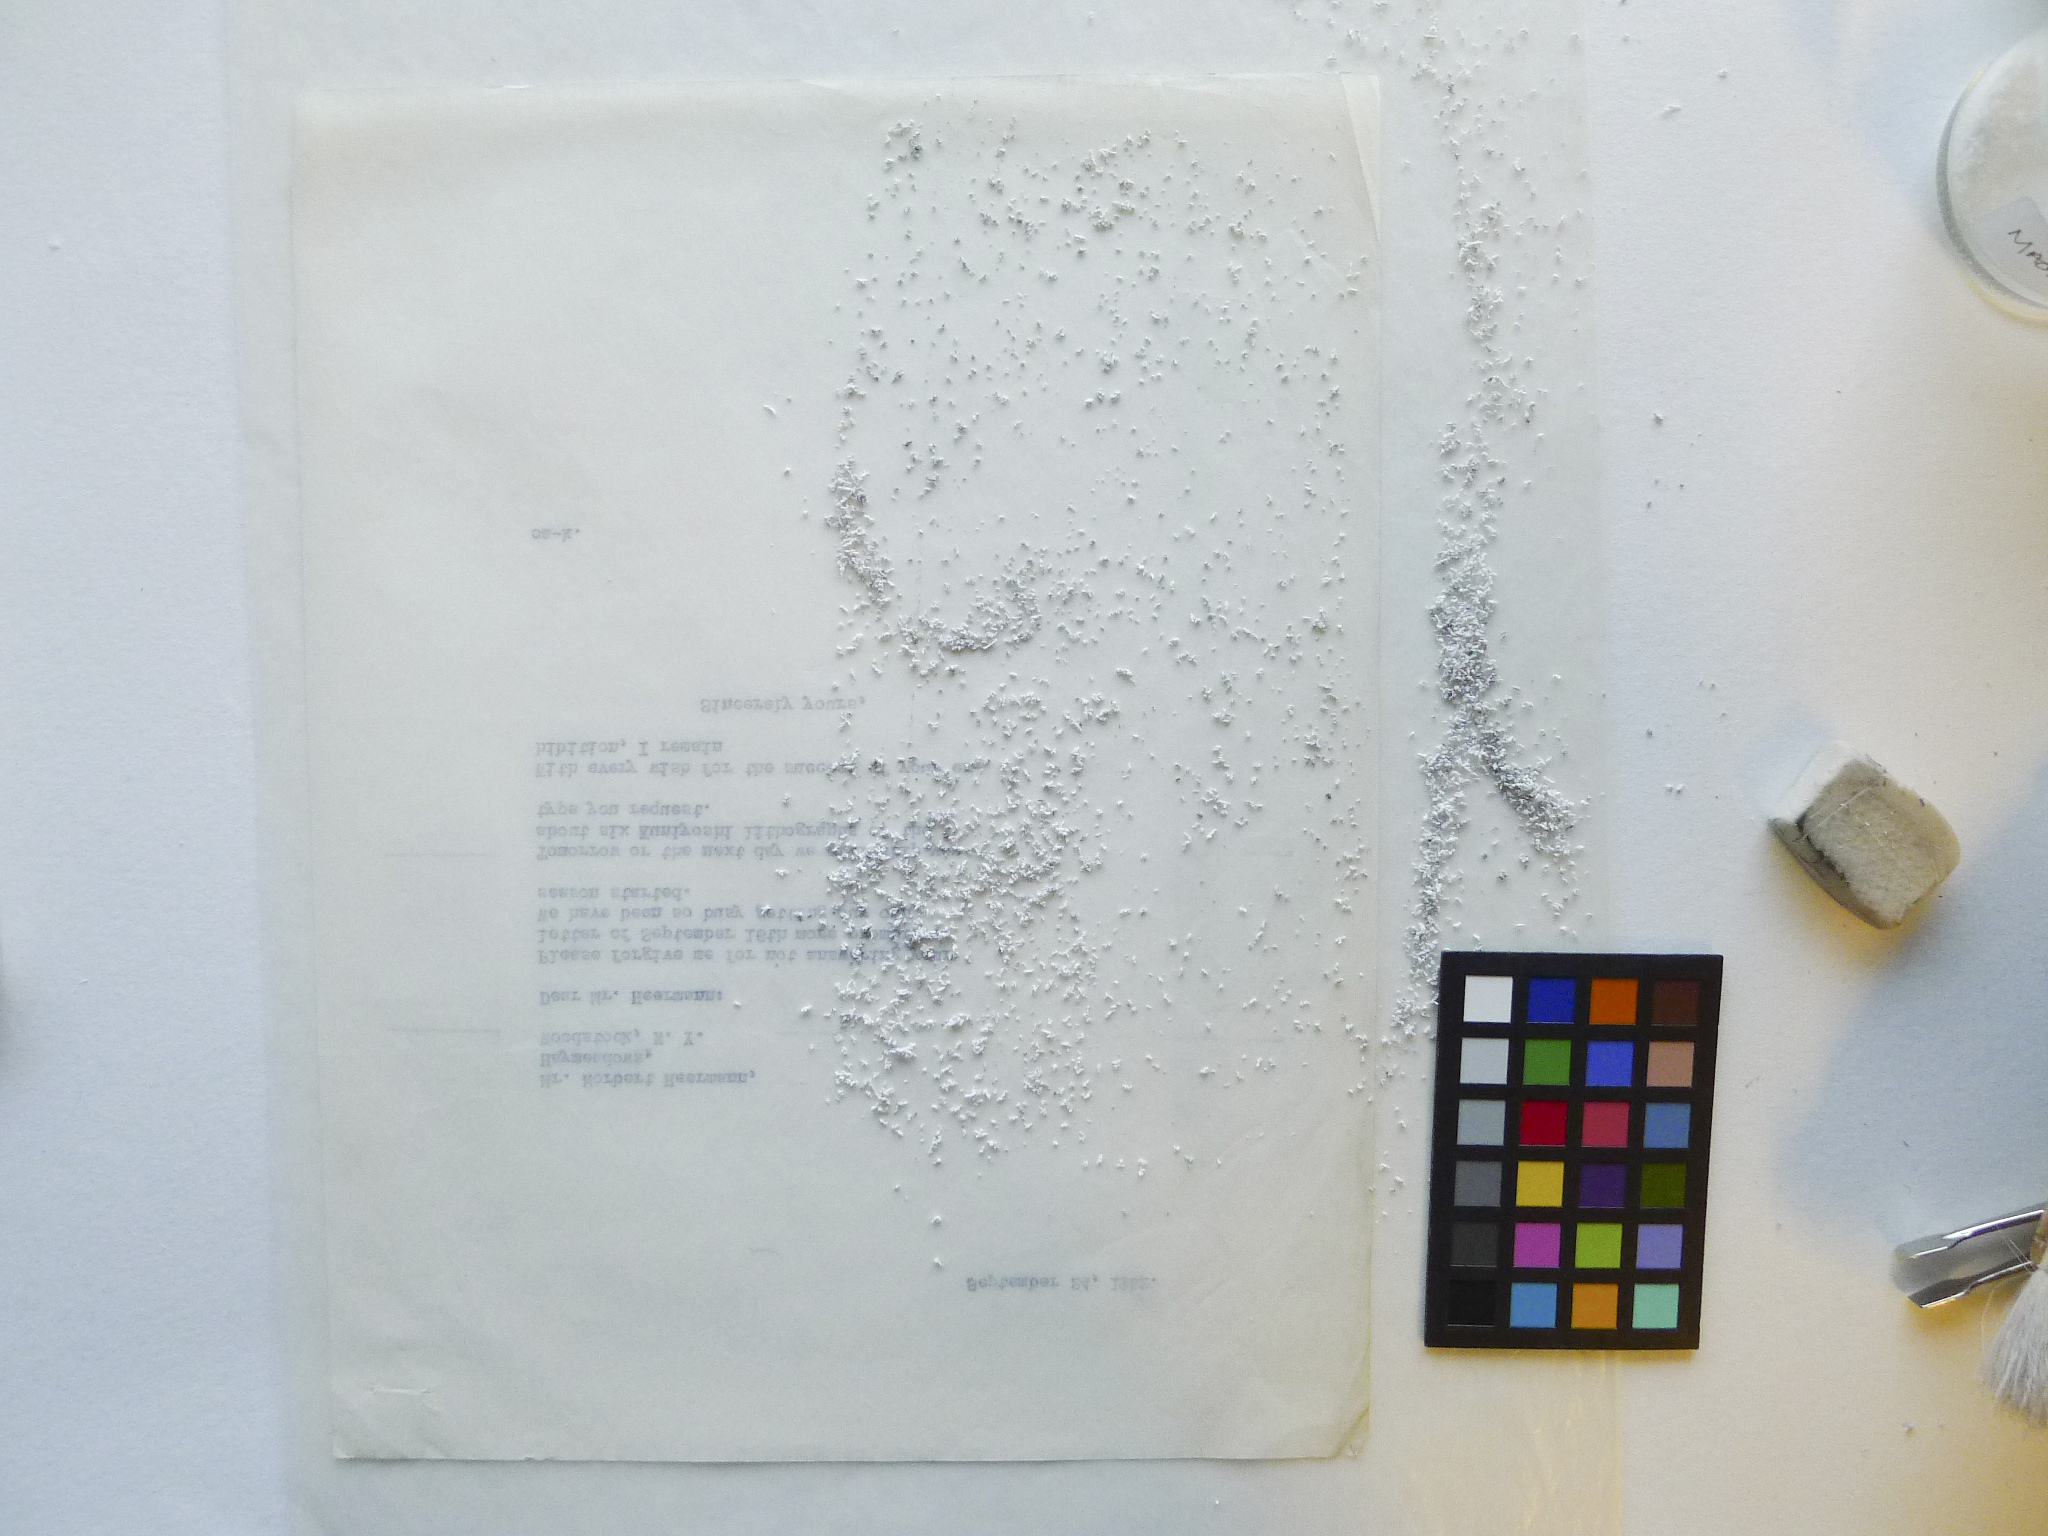 White crumbs on typewritten page